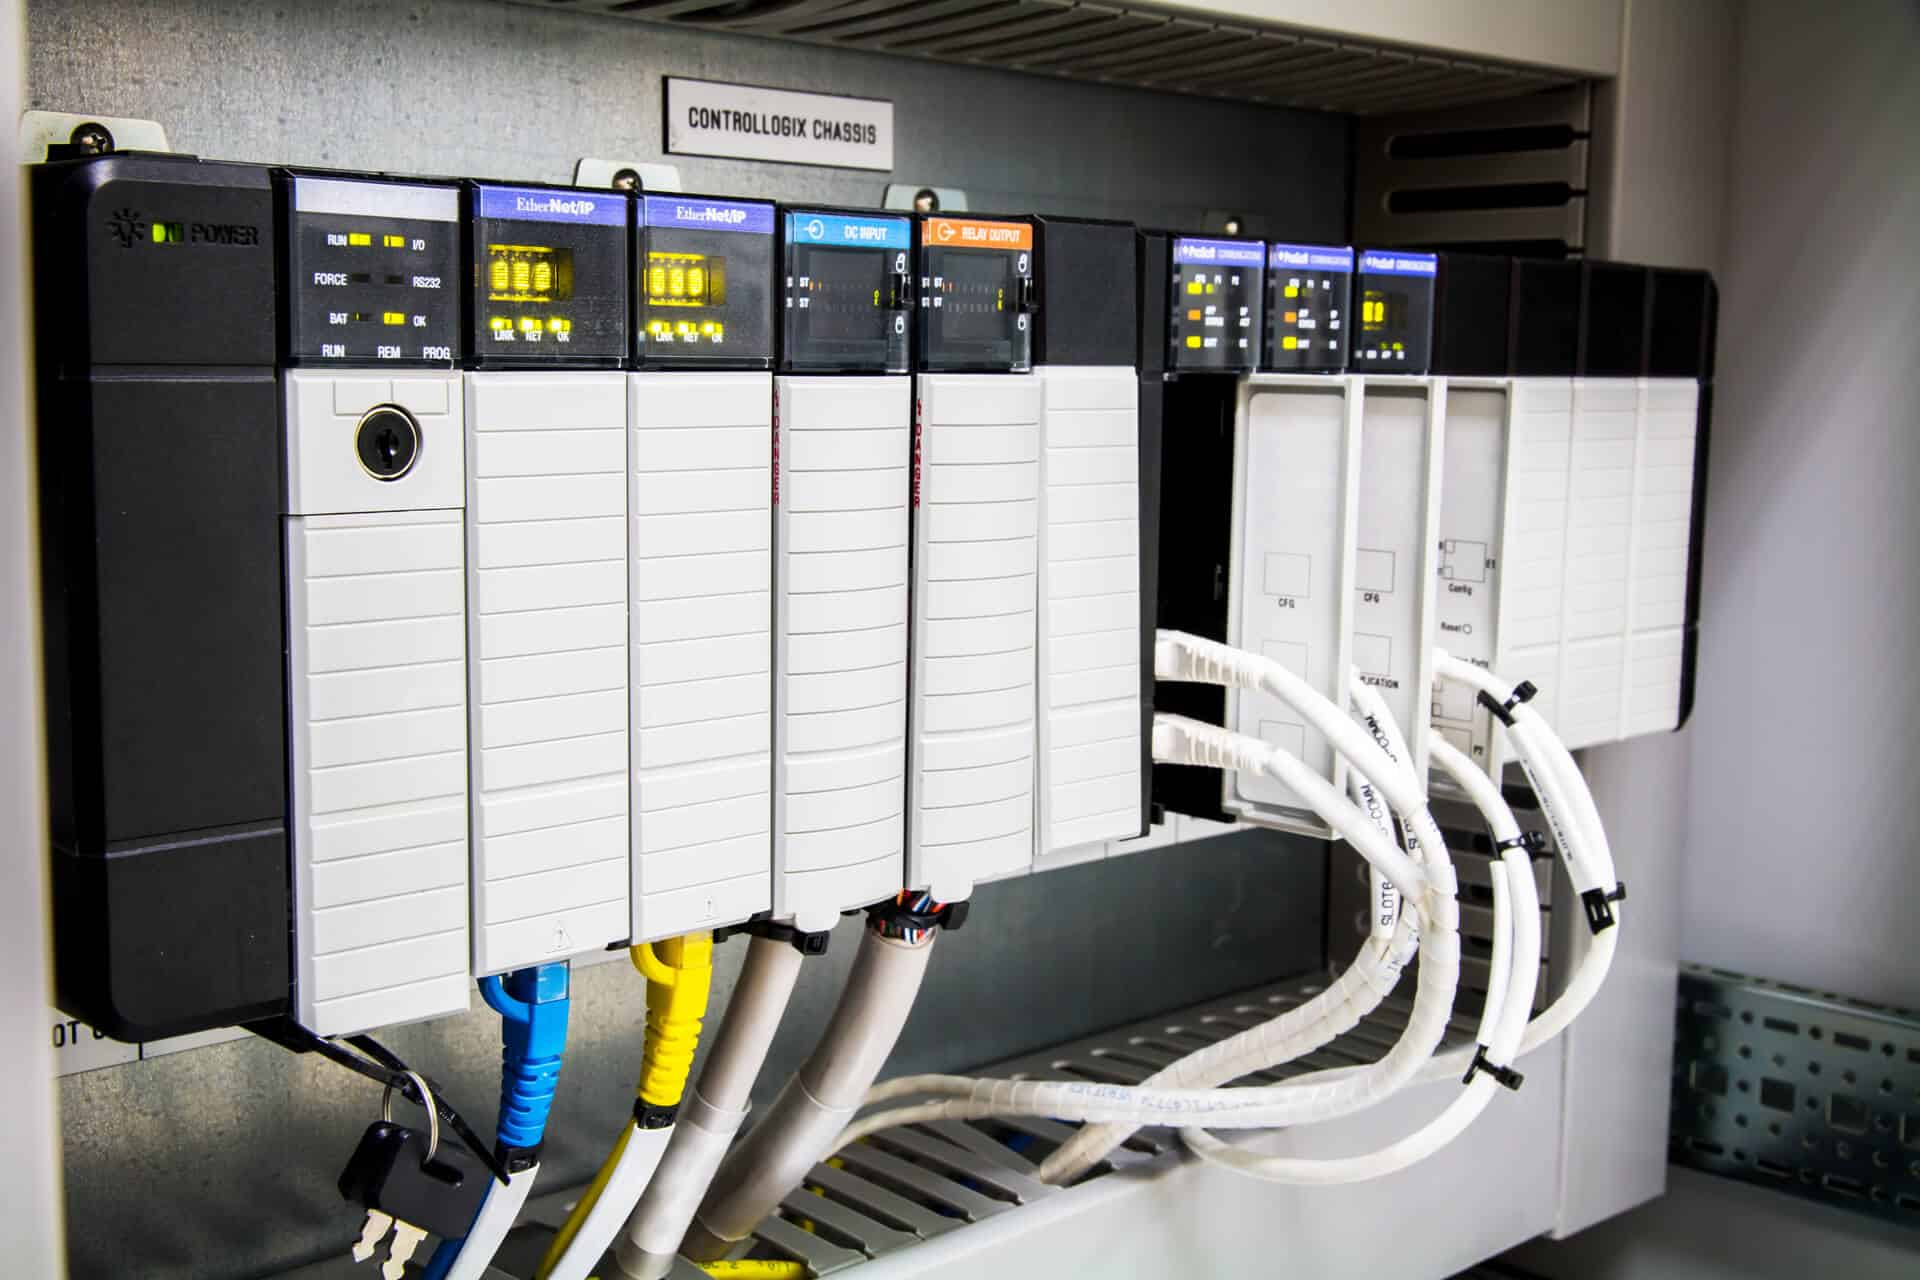 The Importance of PLCs in Industrial Applications